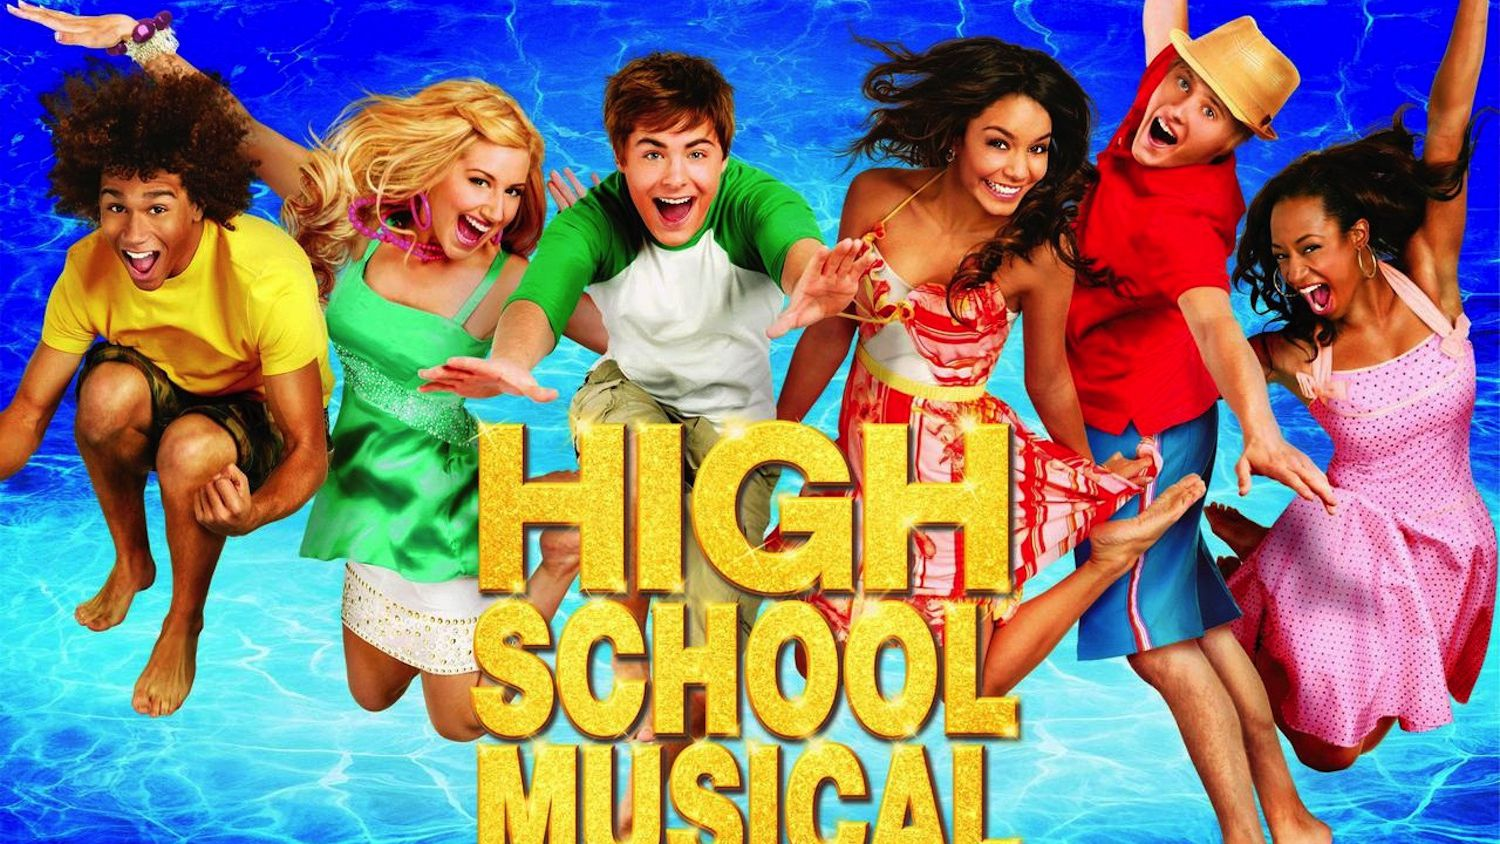 Image result for High school musical 2